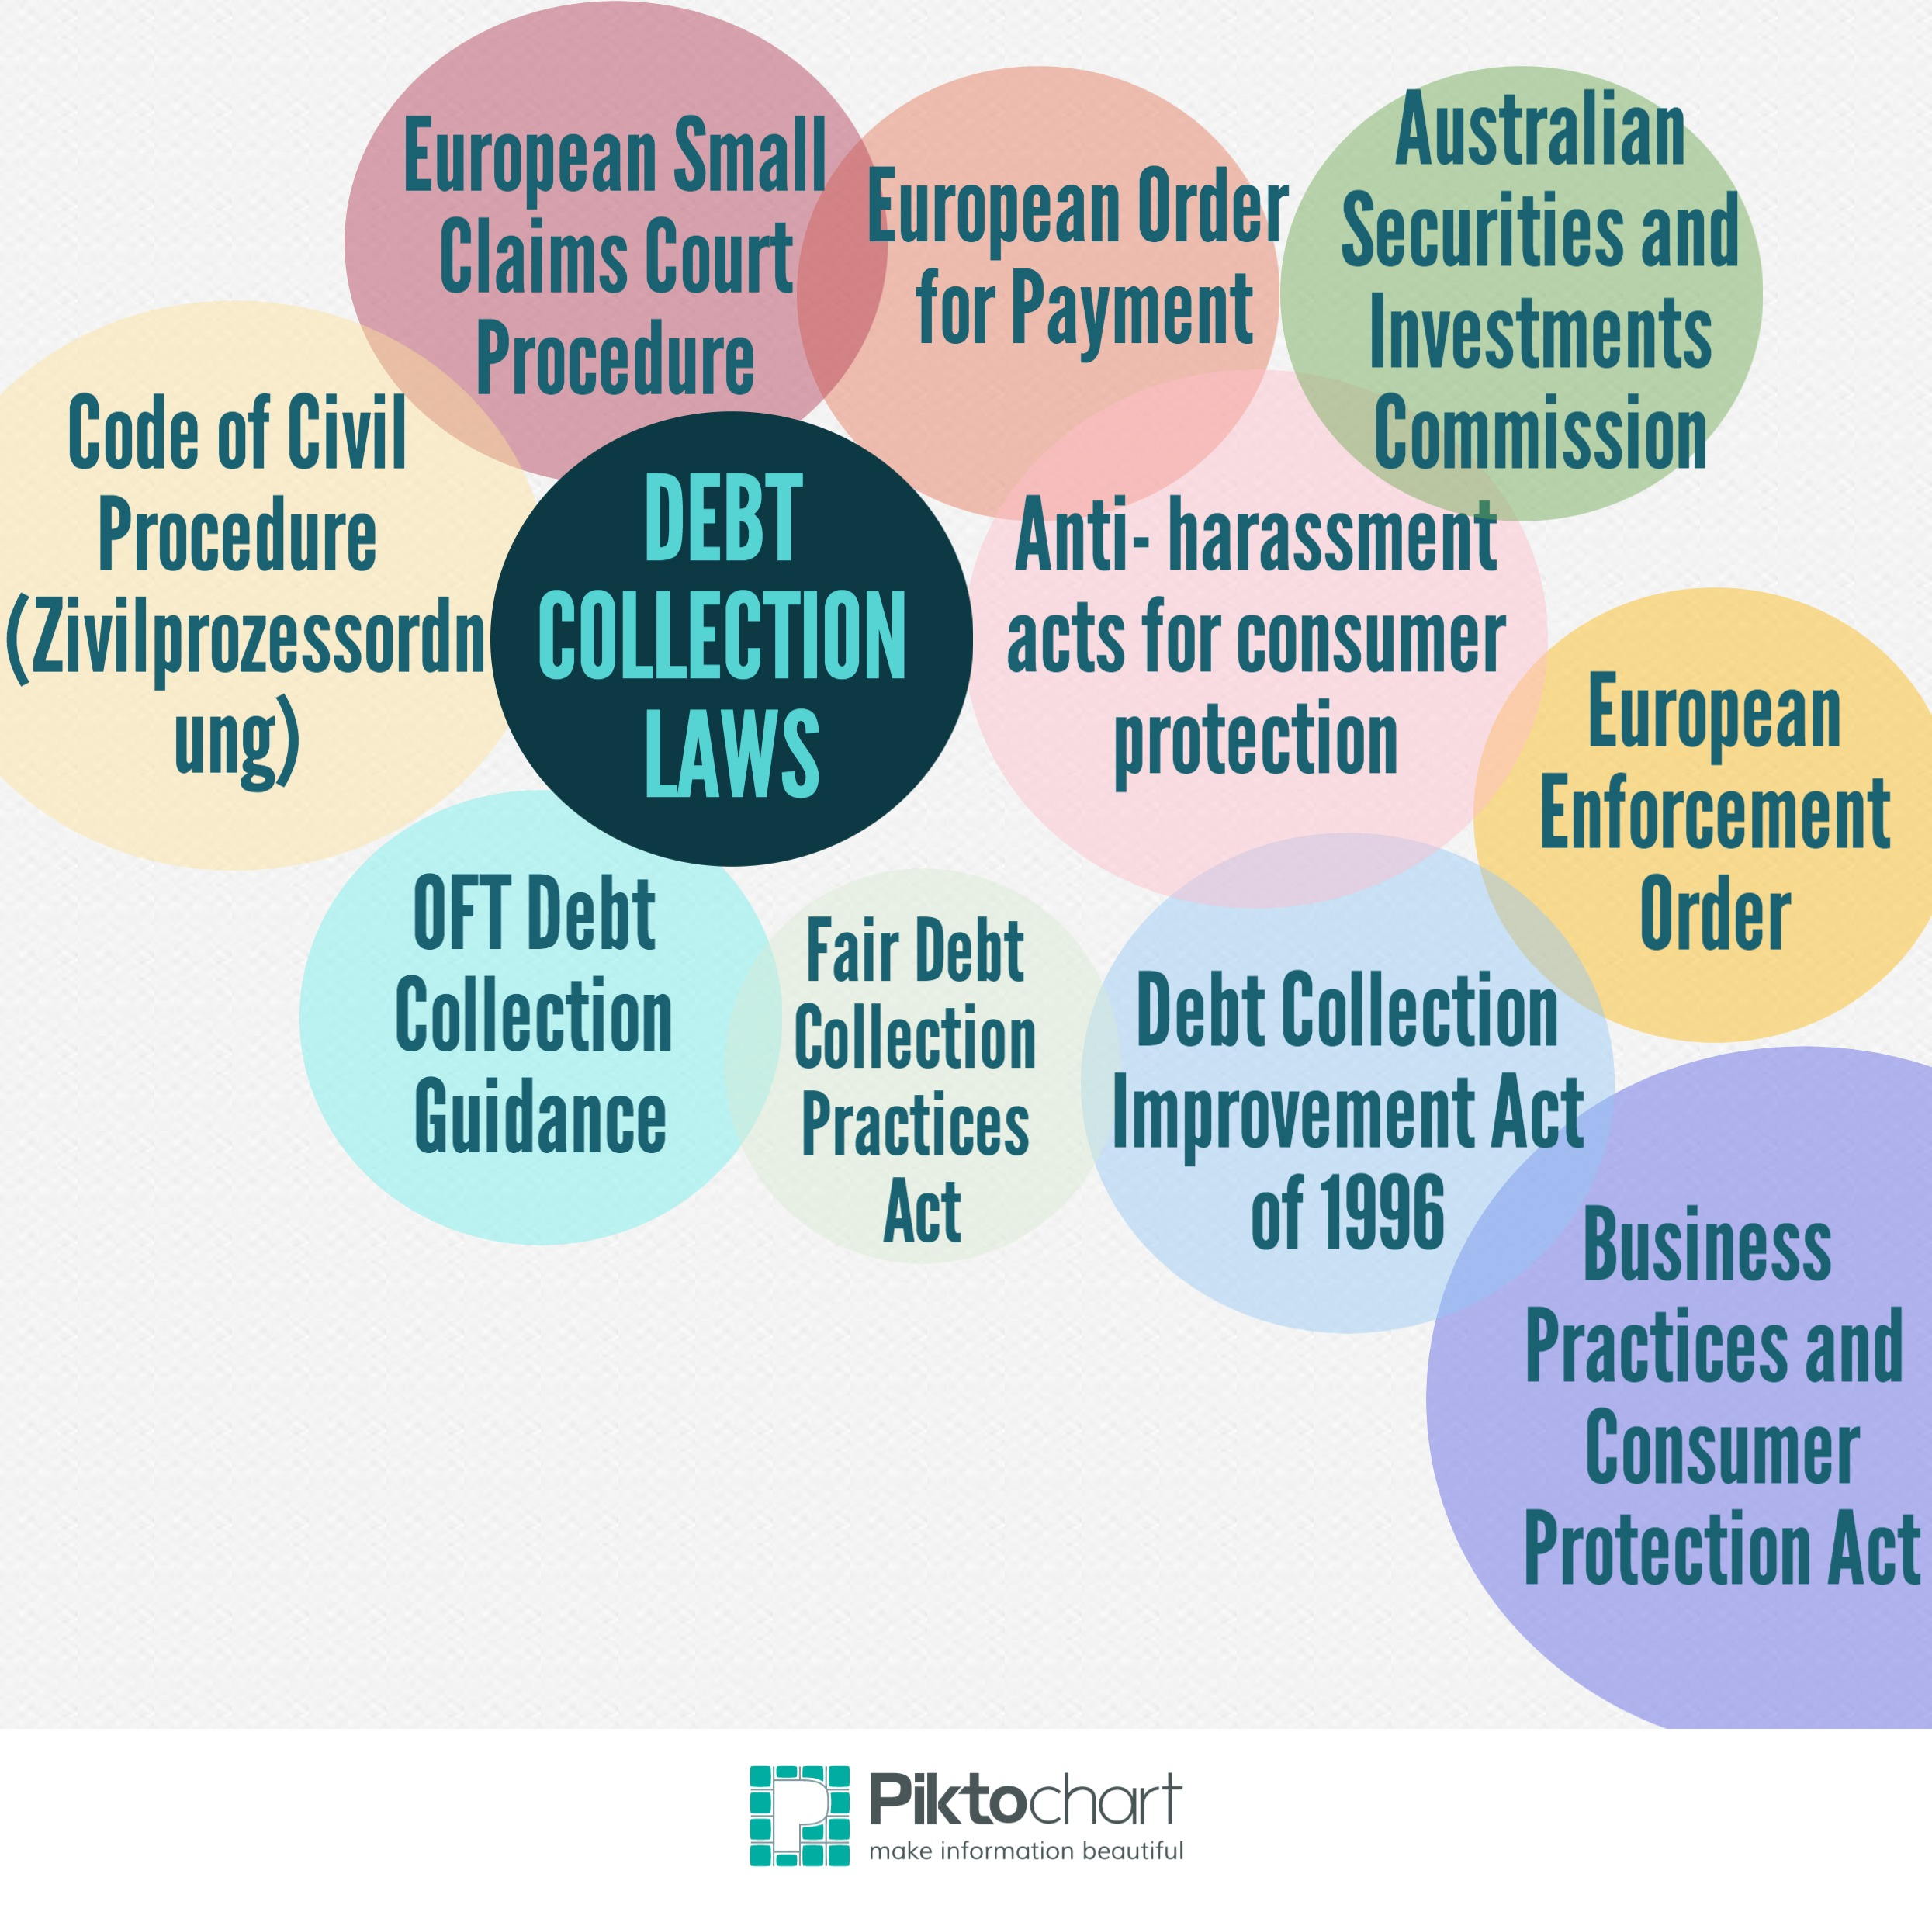 debt collection laws anti harassment acts for consumer protection